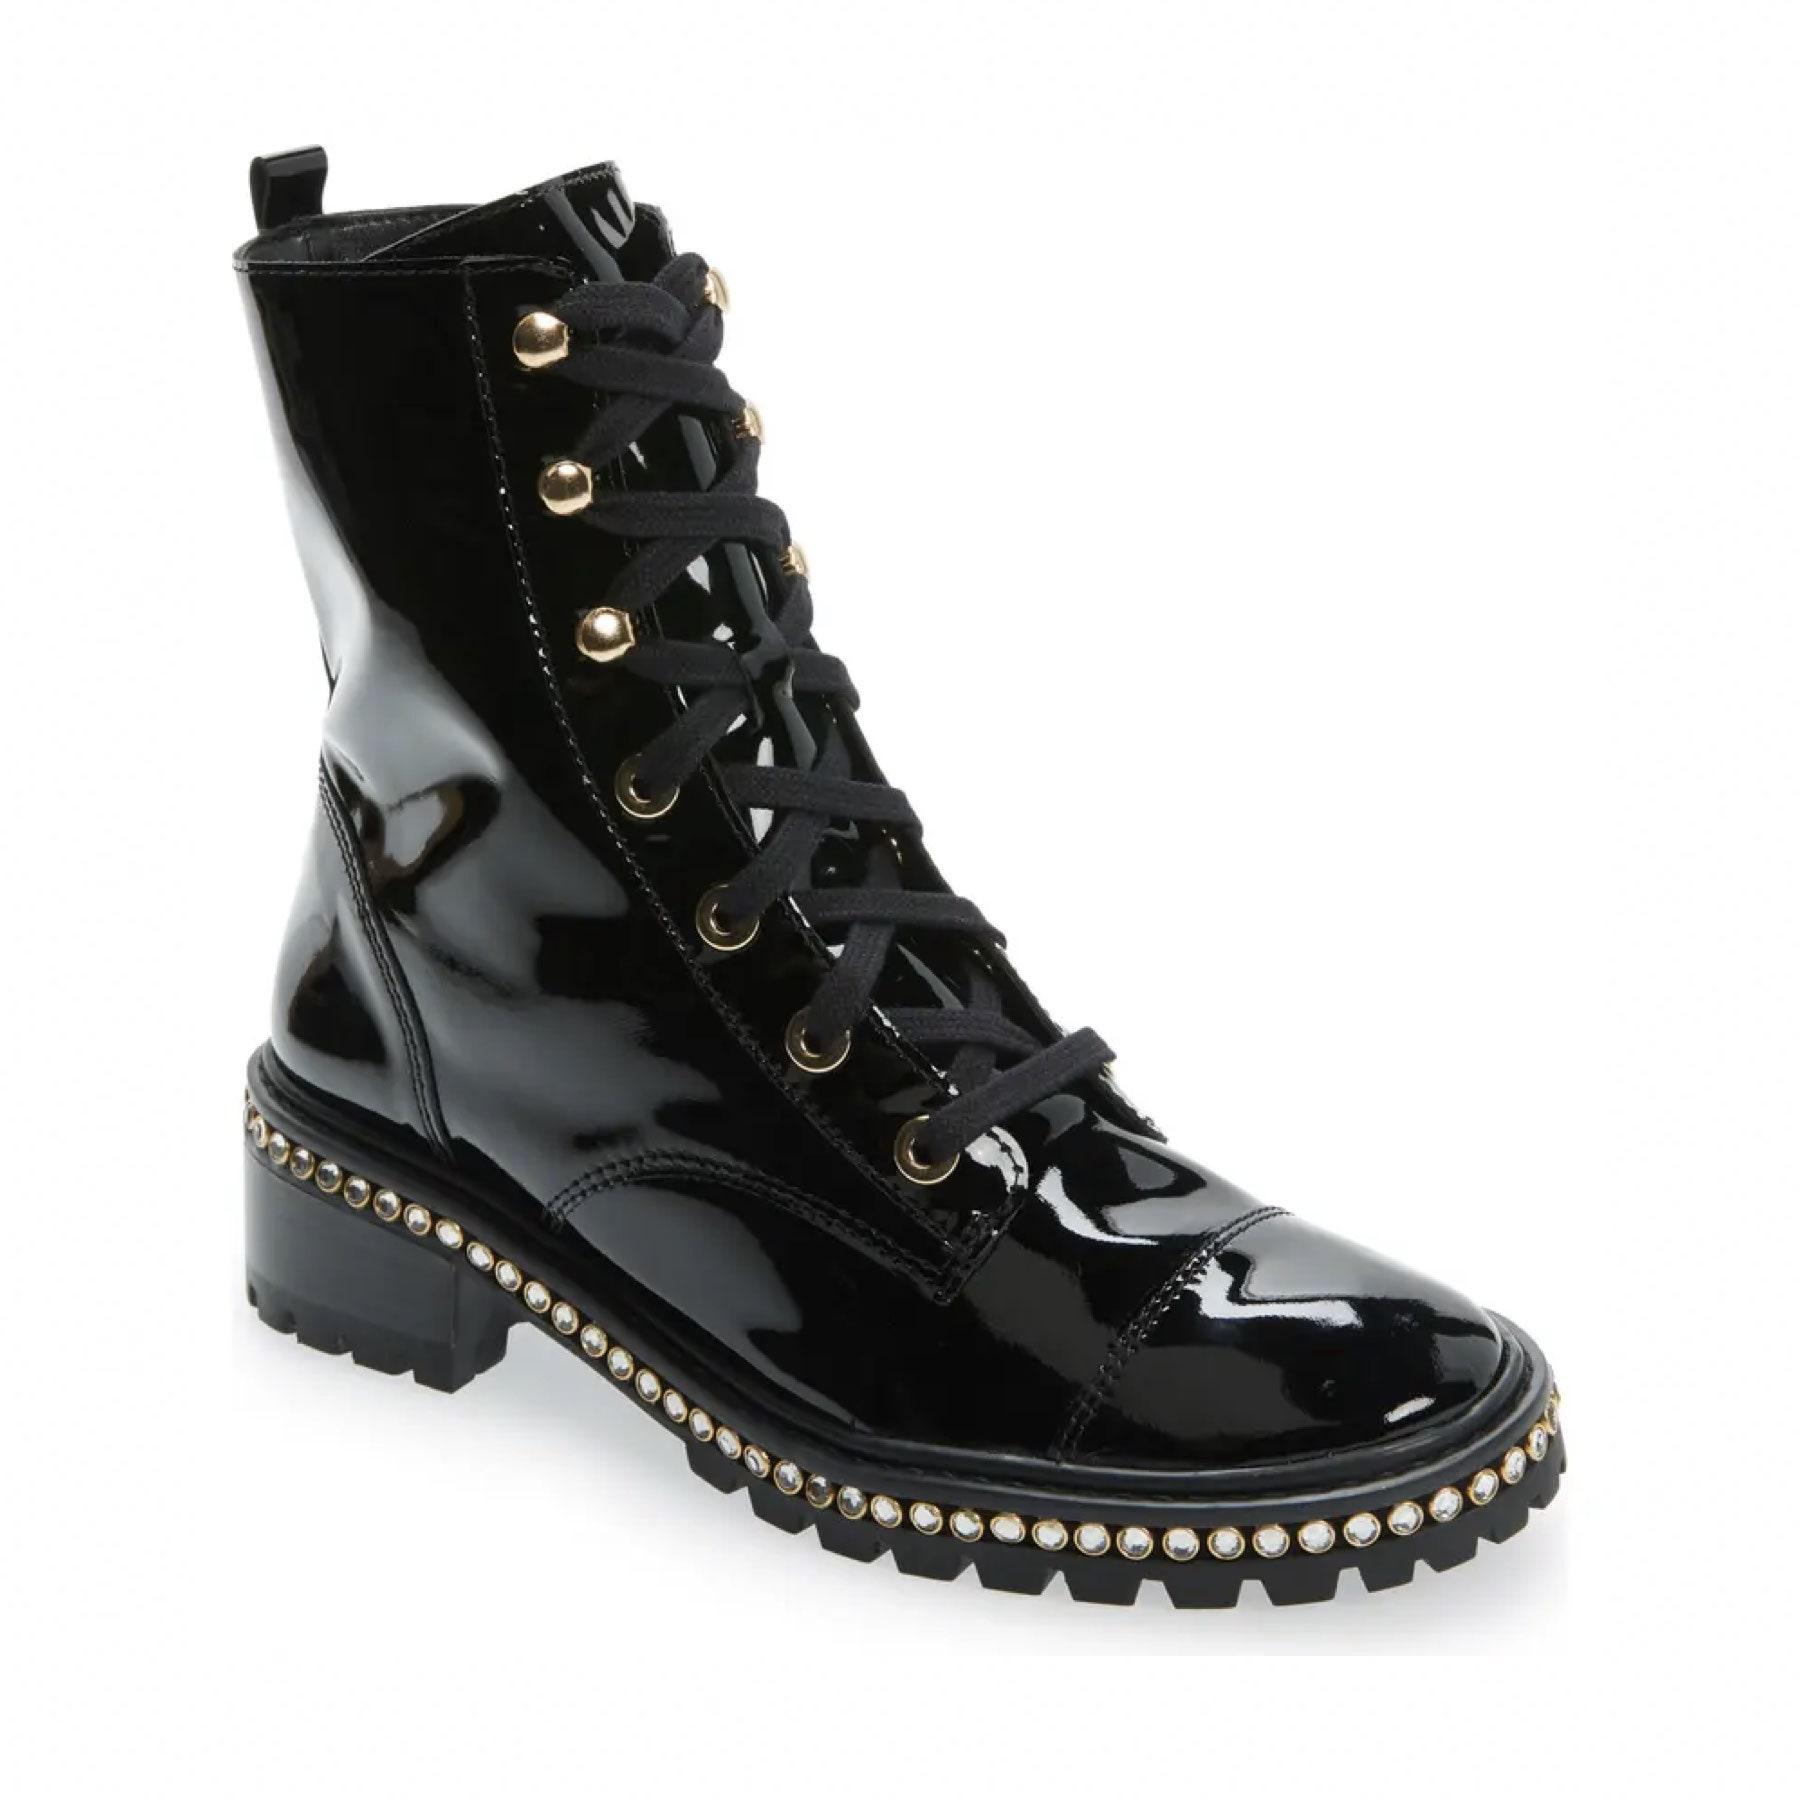 shiny leather black lace up boot